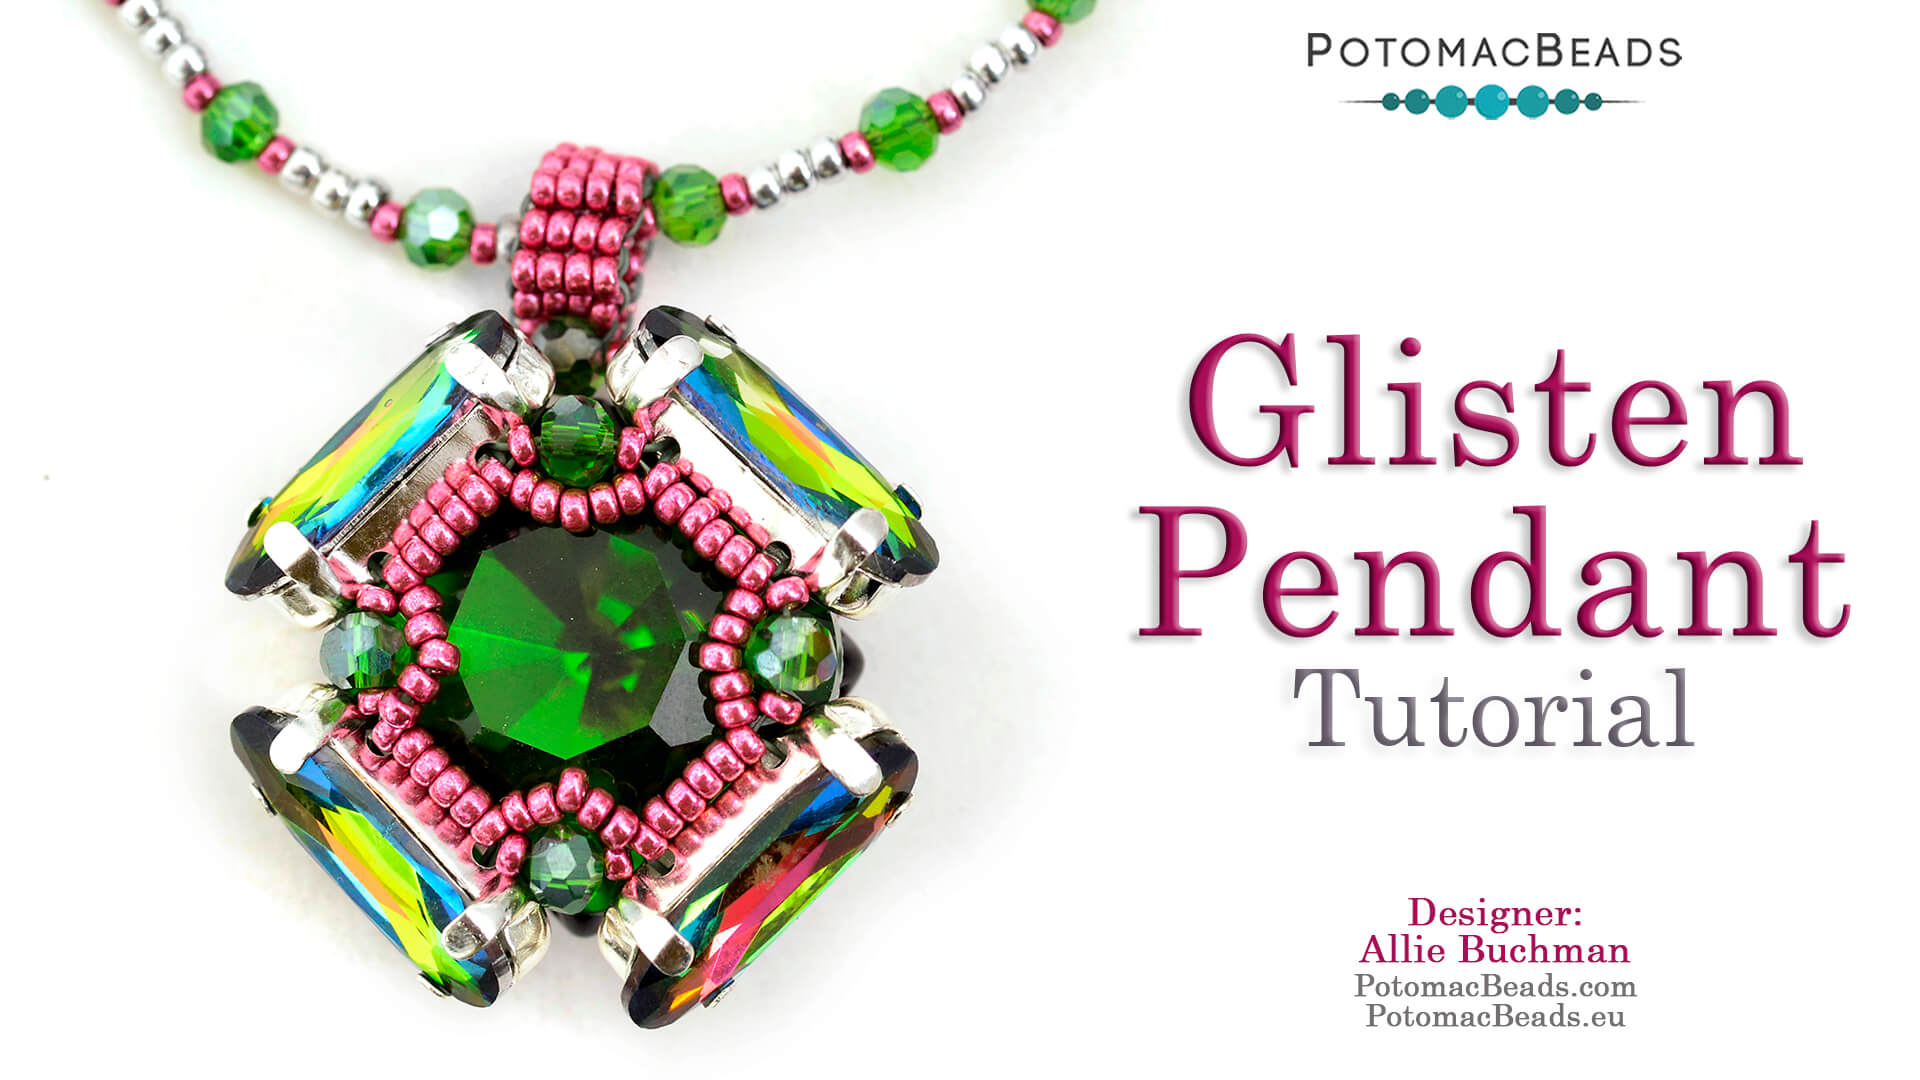 How to Bead Jewelry / Videos Sorted by Beads / QuadBow & PieDuo Bead Videos / Glisten Pendant Tutorial